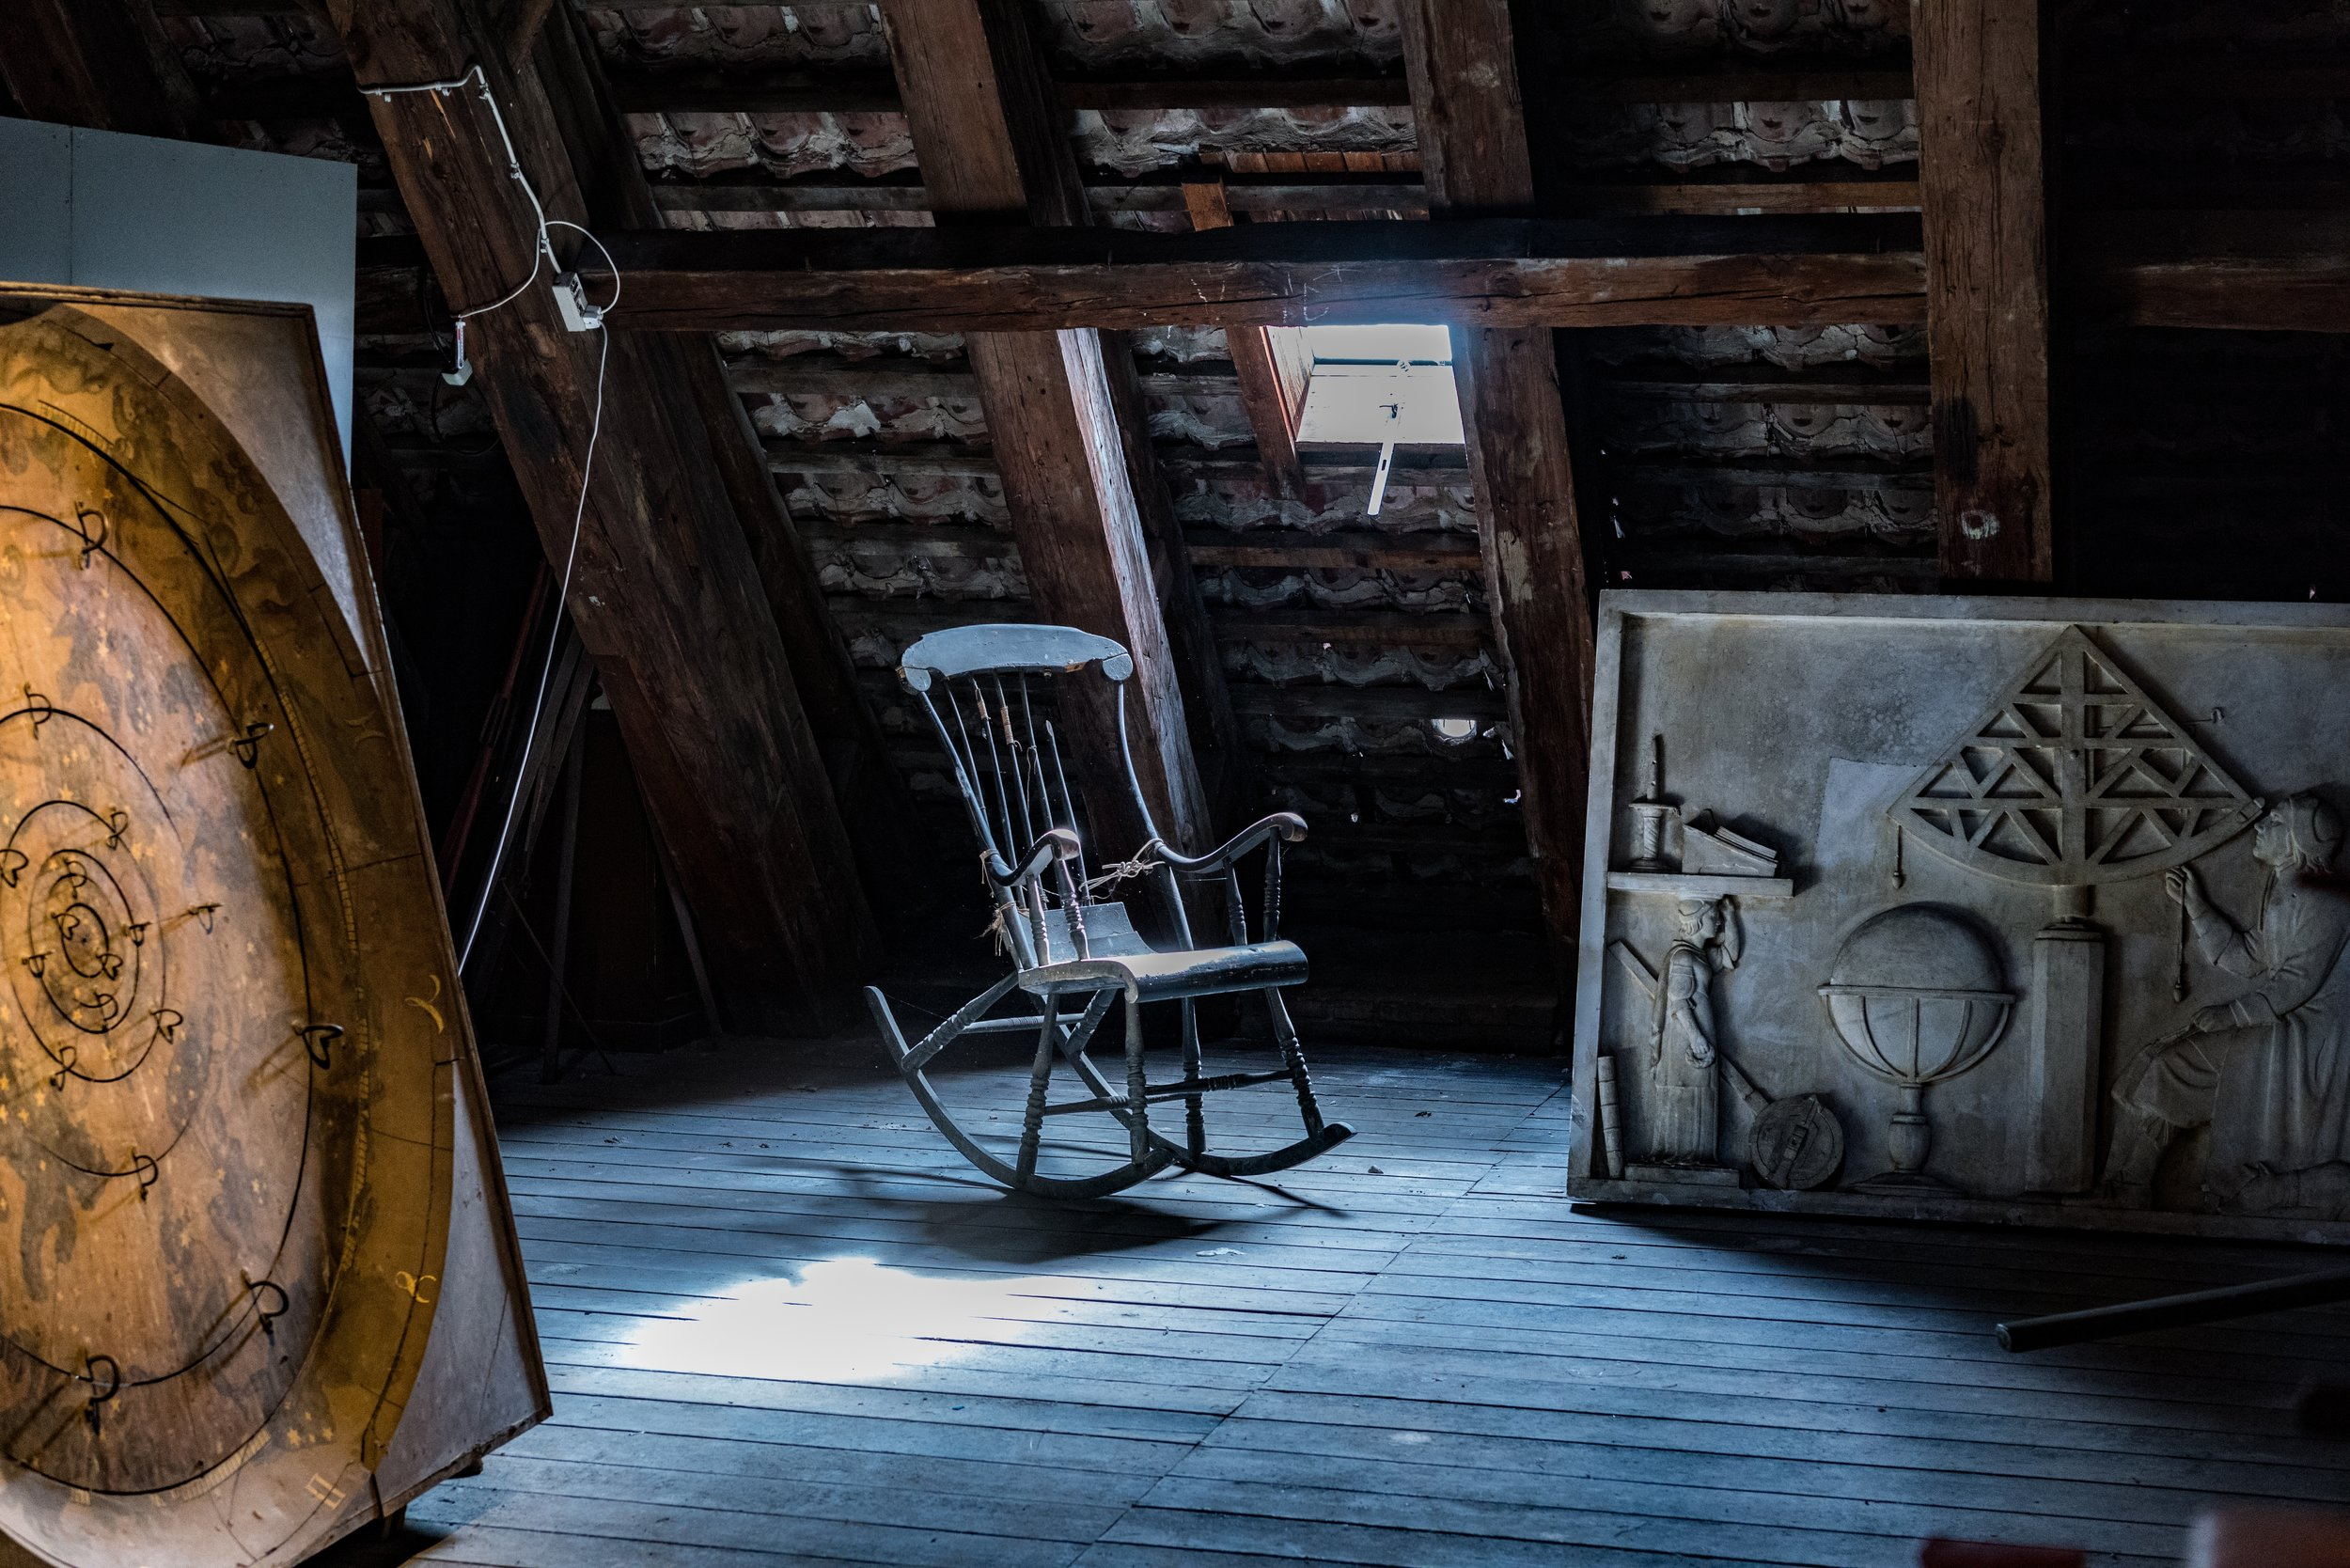 Rembrandts In The Attic Everedge Global